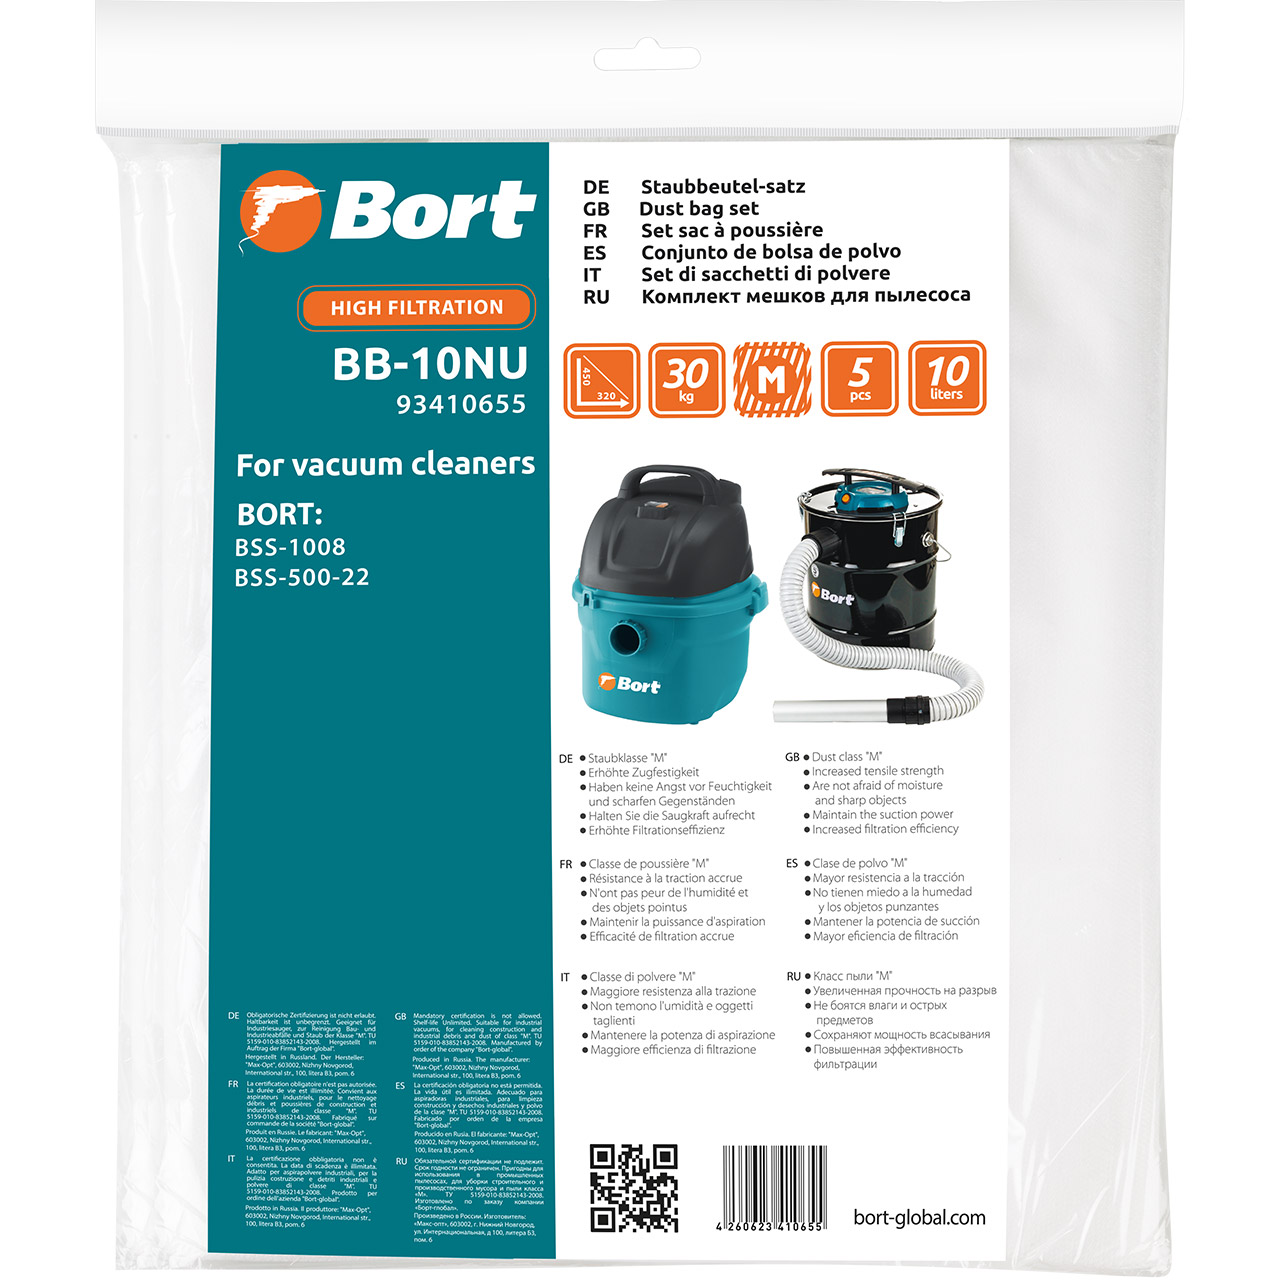 Bags set dust collection for vacuum Cleaner bort BB-10NU (5 pcs, 10 l. Suitable BSS-1008, BSS-500-22) стоимость